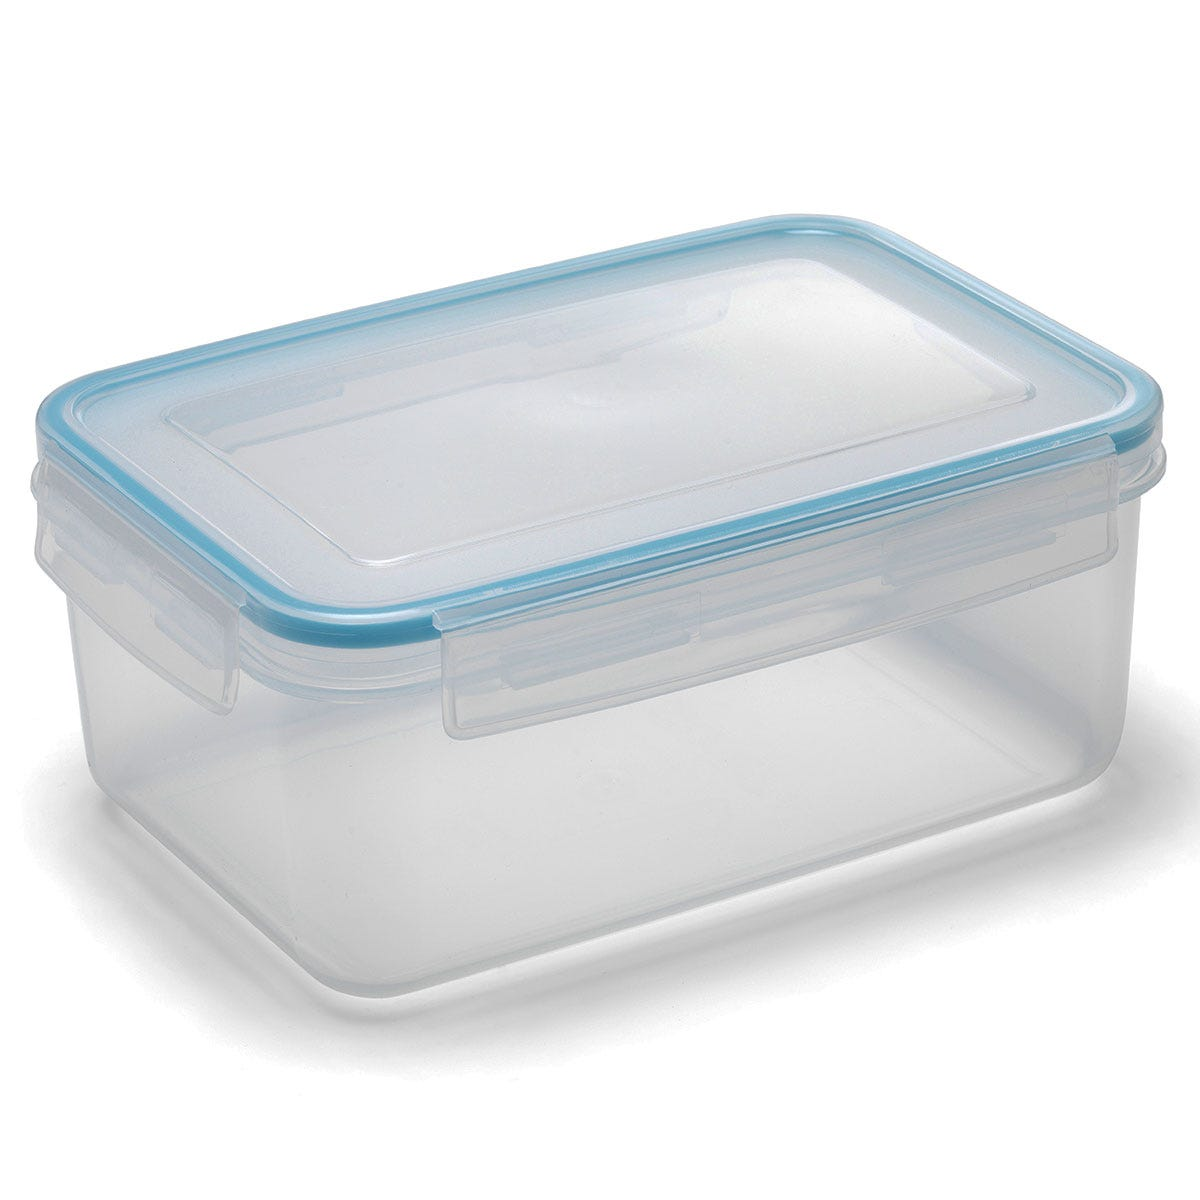 Image of Addis Clip & Close Lunchbox Container - 2L